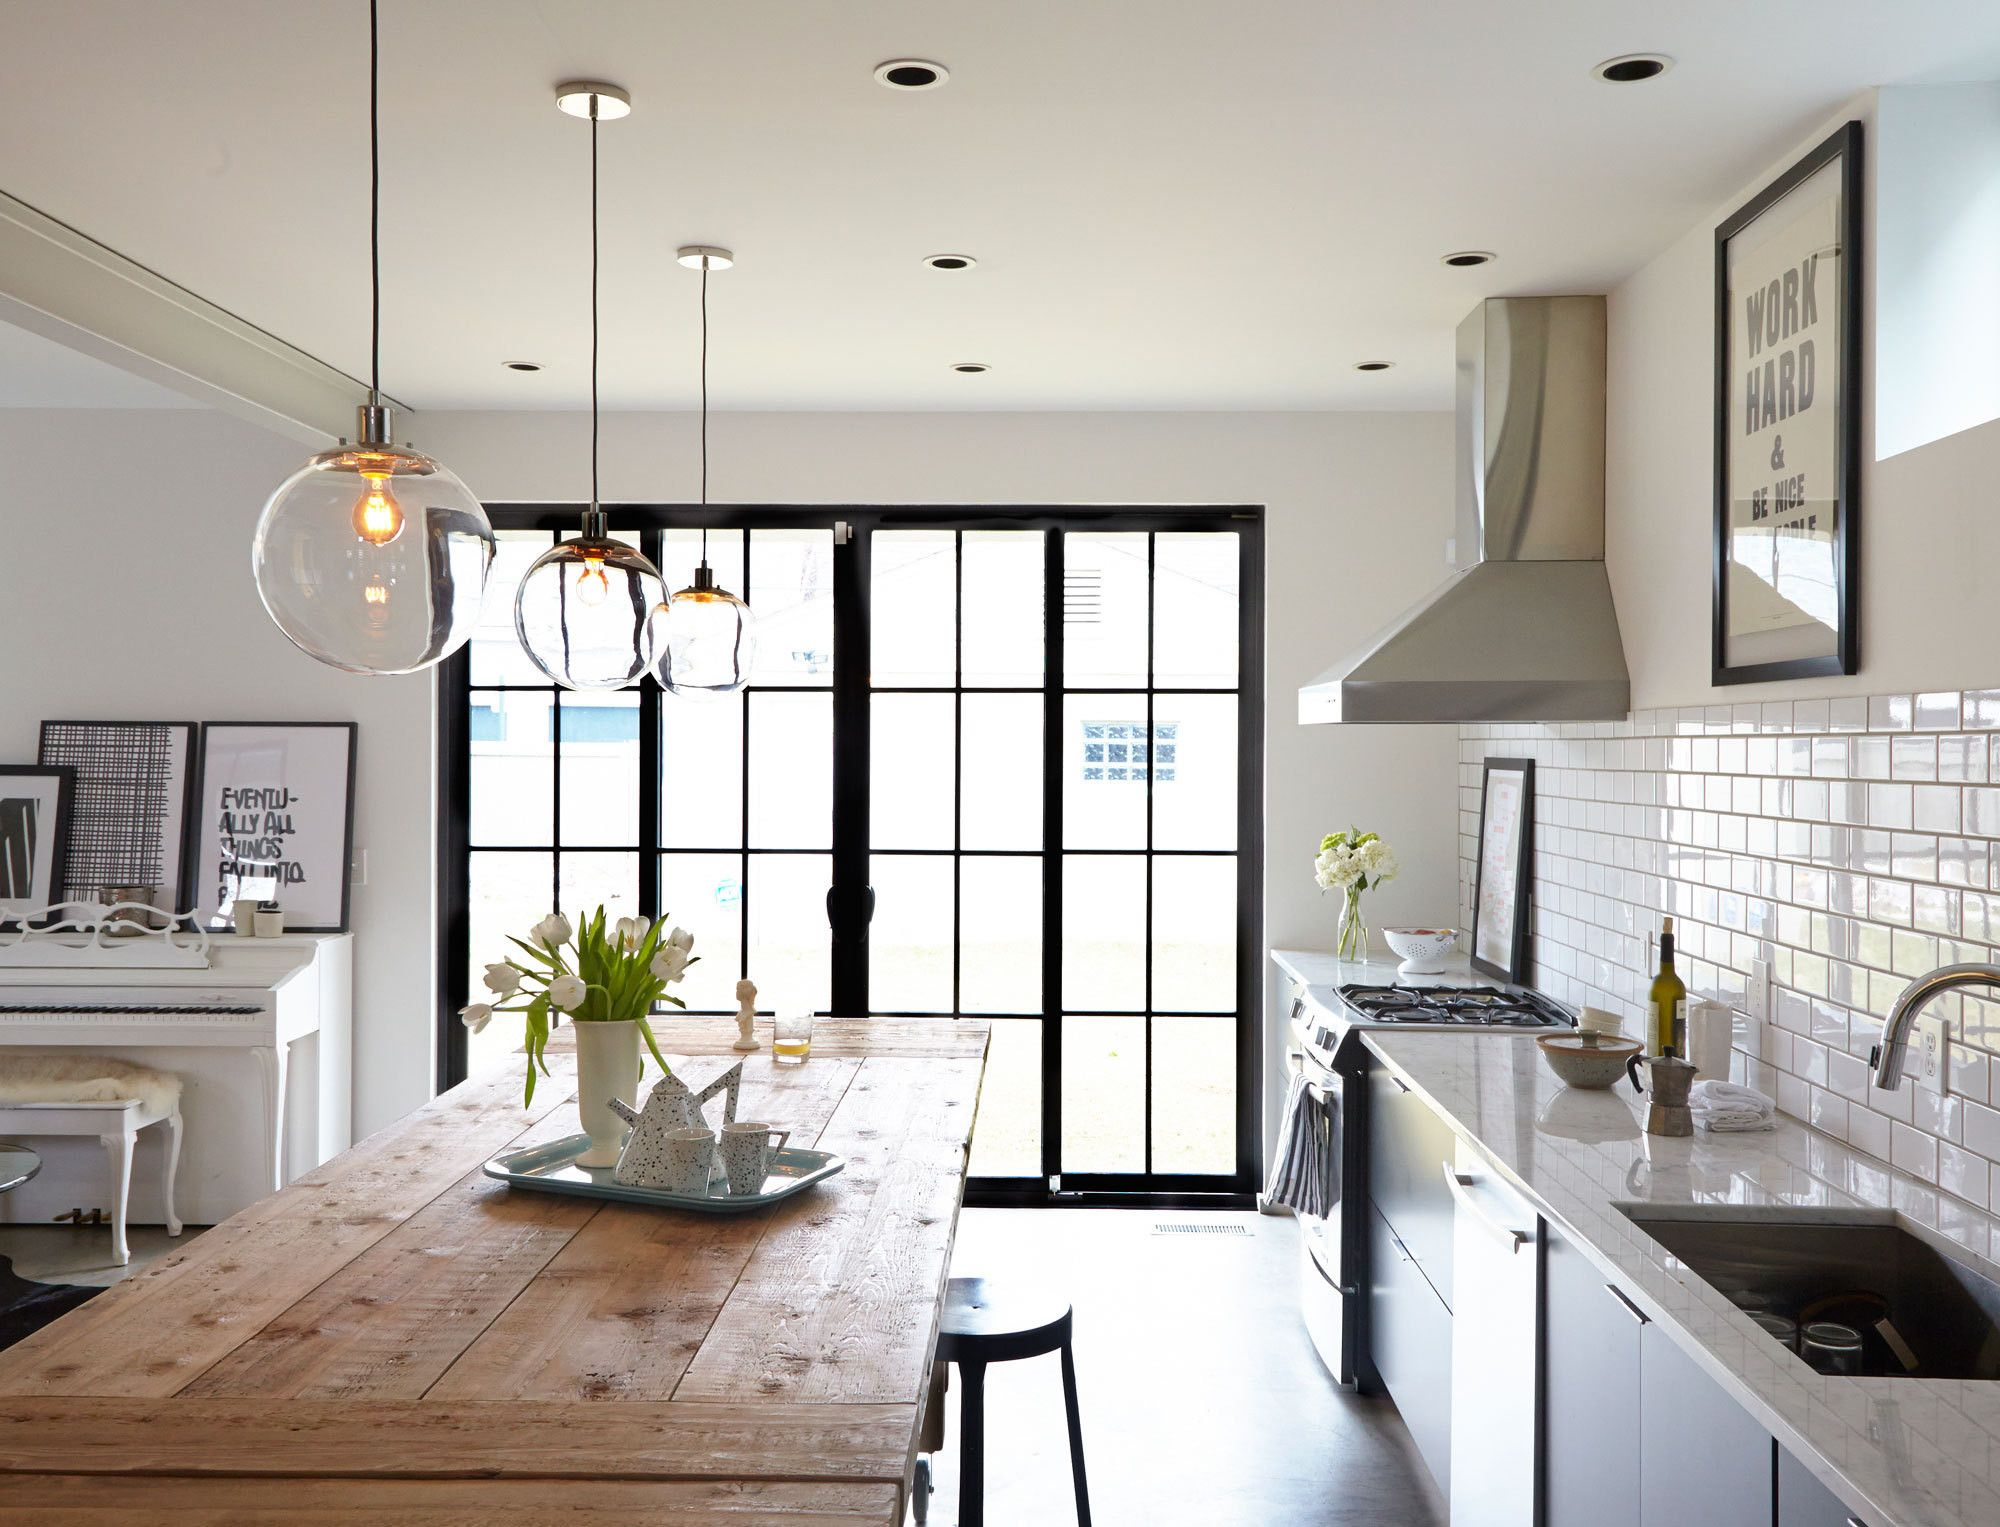 lighting in a kitchen. In The Clear. Pendant Lights KitchenIsland Lighting A Kitchen